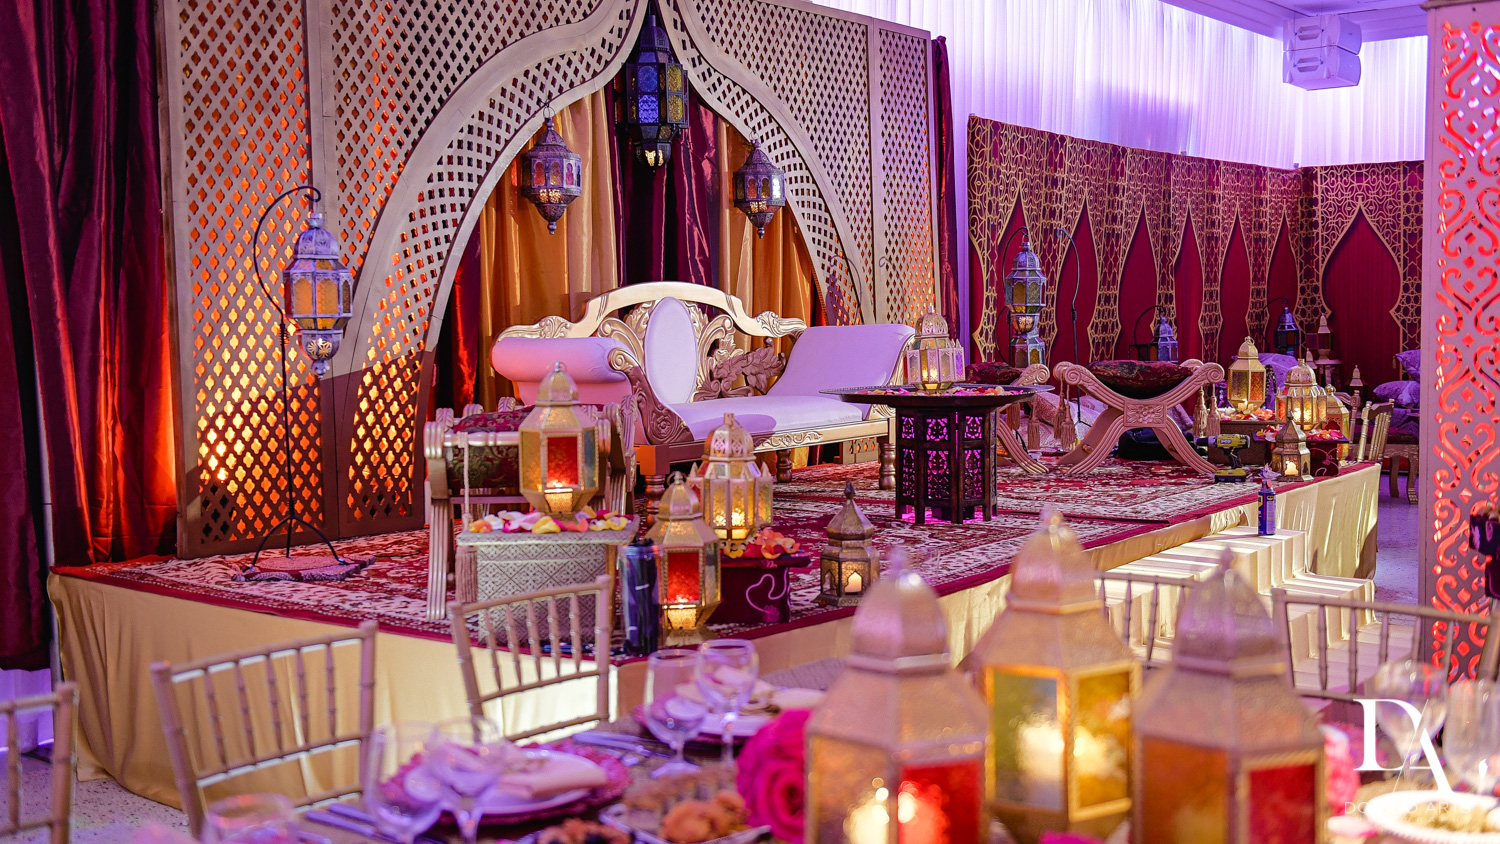 morrocan decor at Authentic Morrocan Jewish Henna Party by Domino Arts Photography